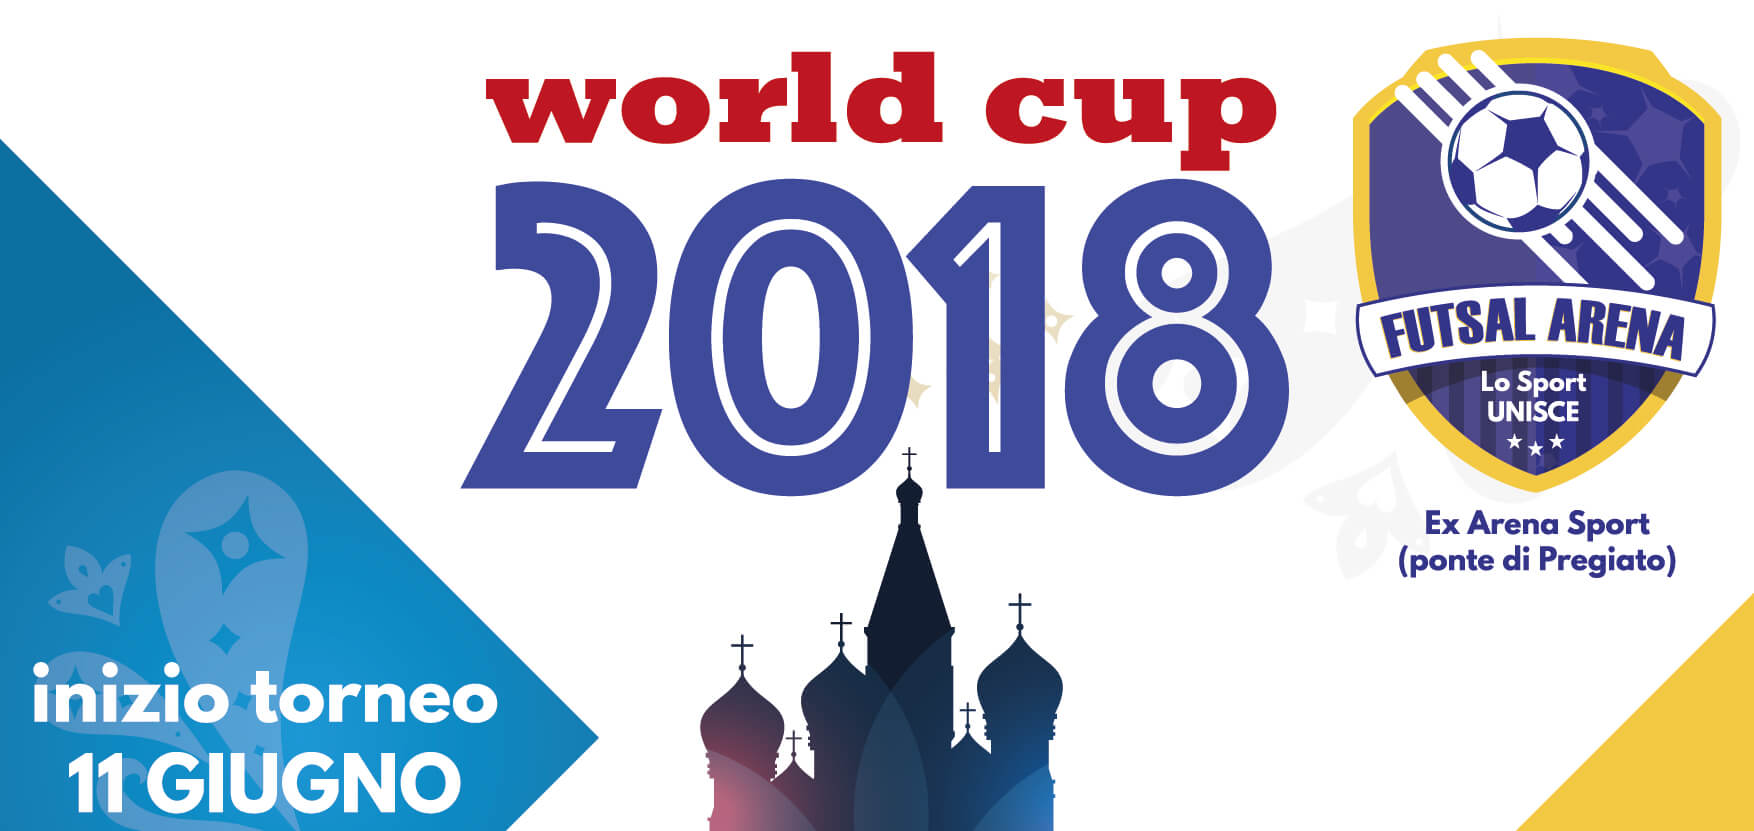 WORLD CUP 2018 - Over 35 [Recuperato]